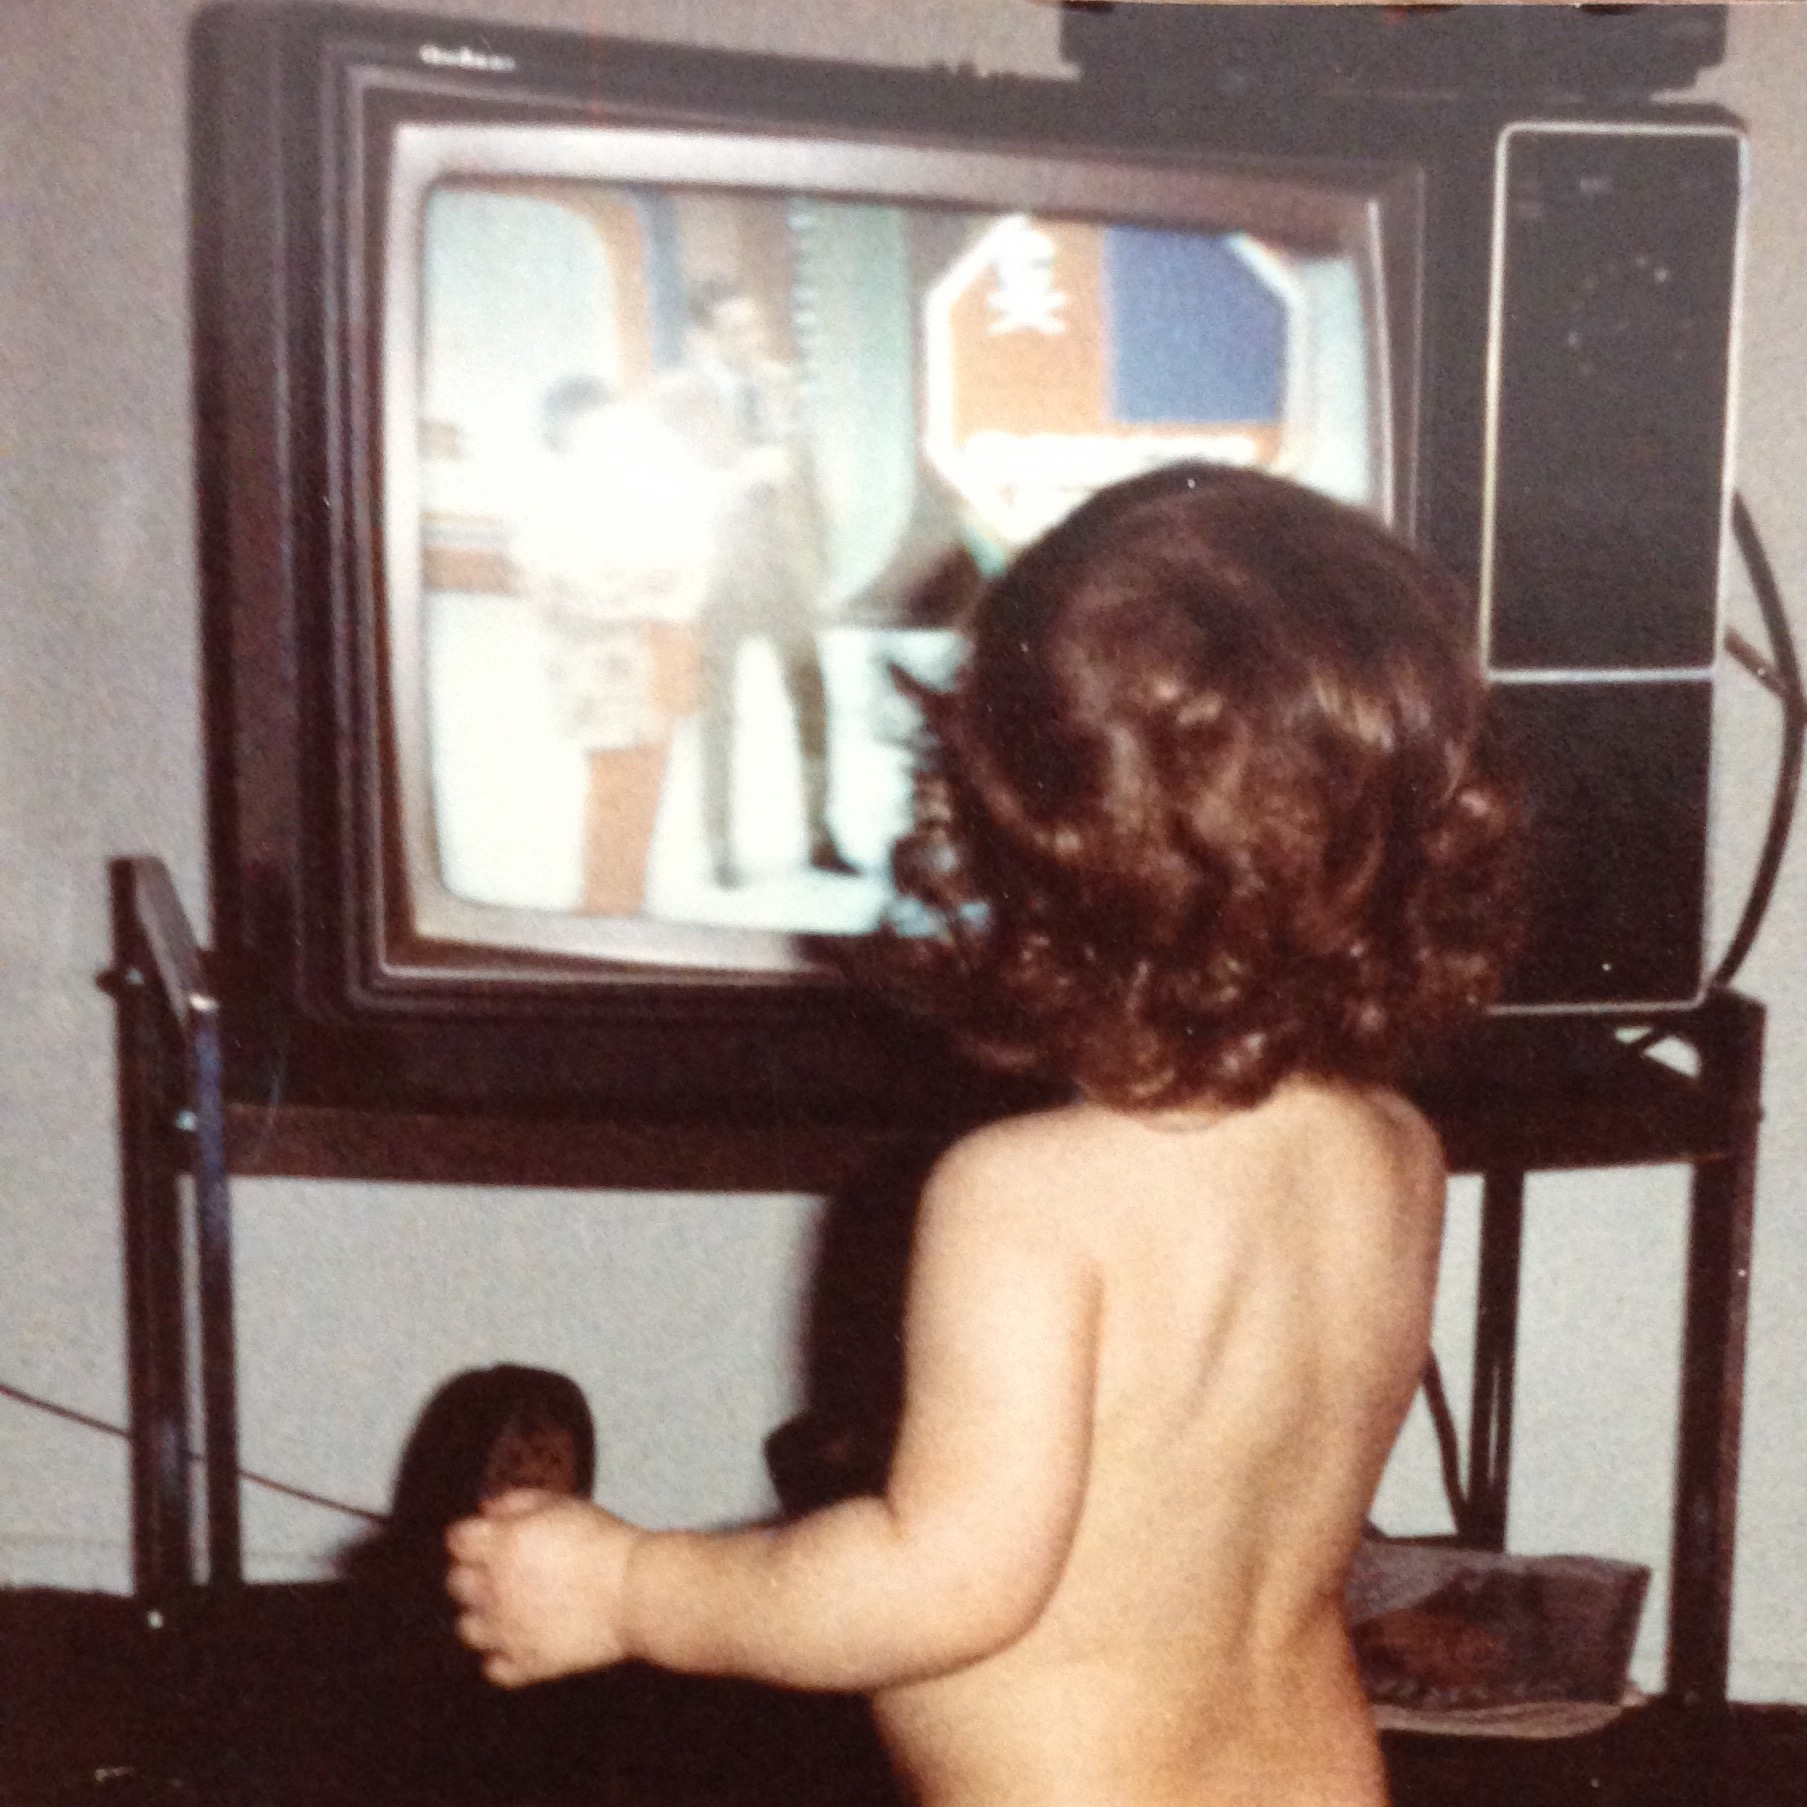 Even from an early age, I recognized game shows made the most compelling television! Here I am as a 2-year-old, captivated by Fremantle's The Price is Right.